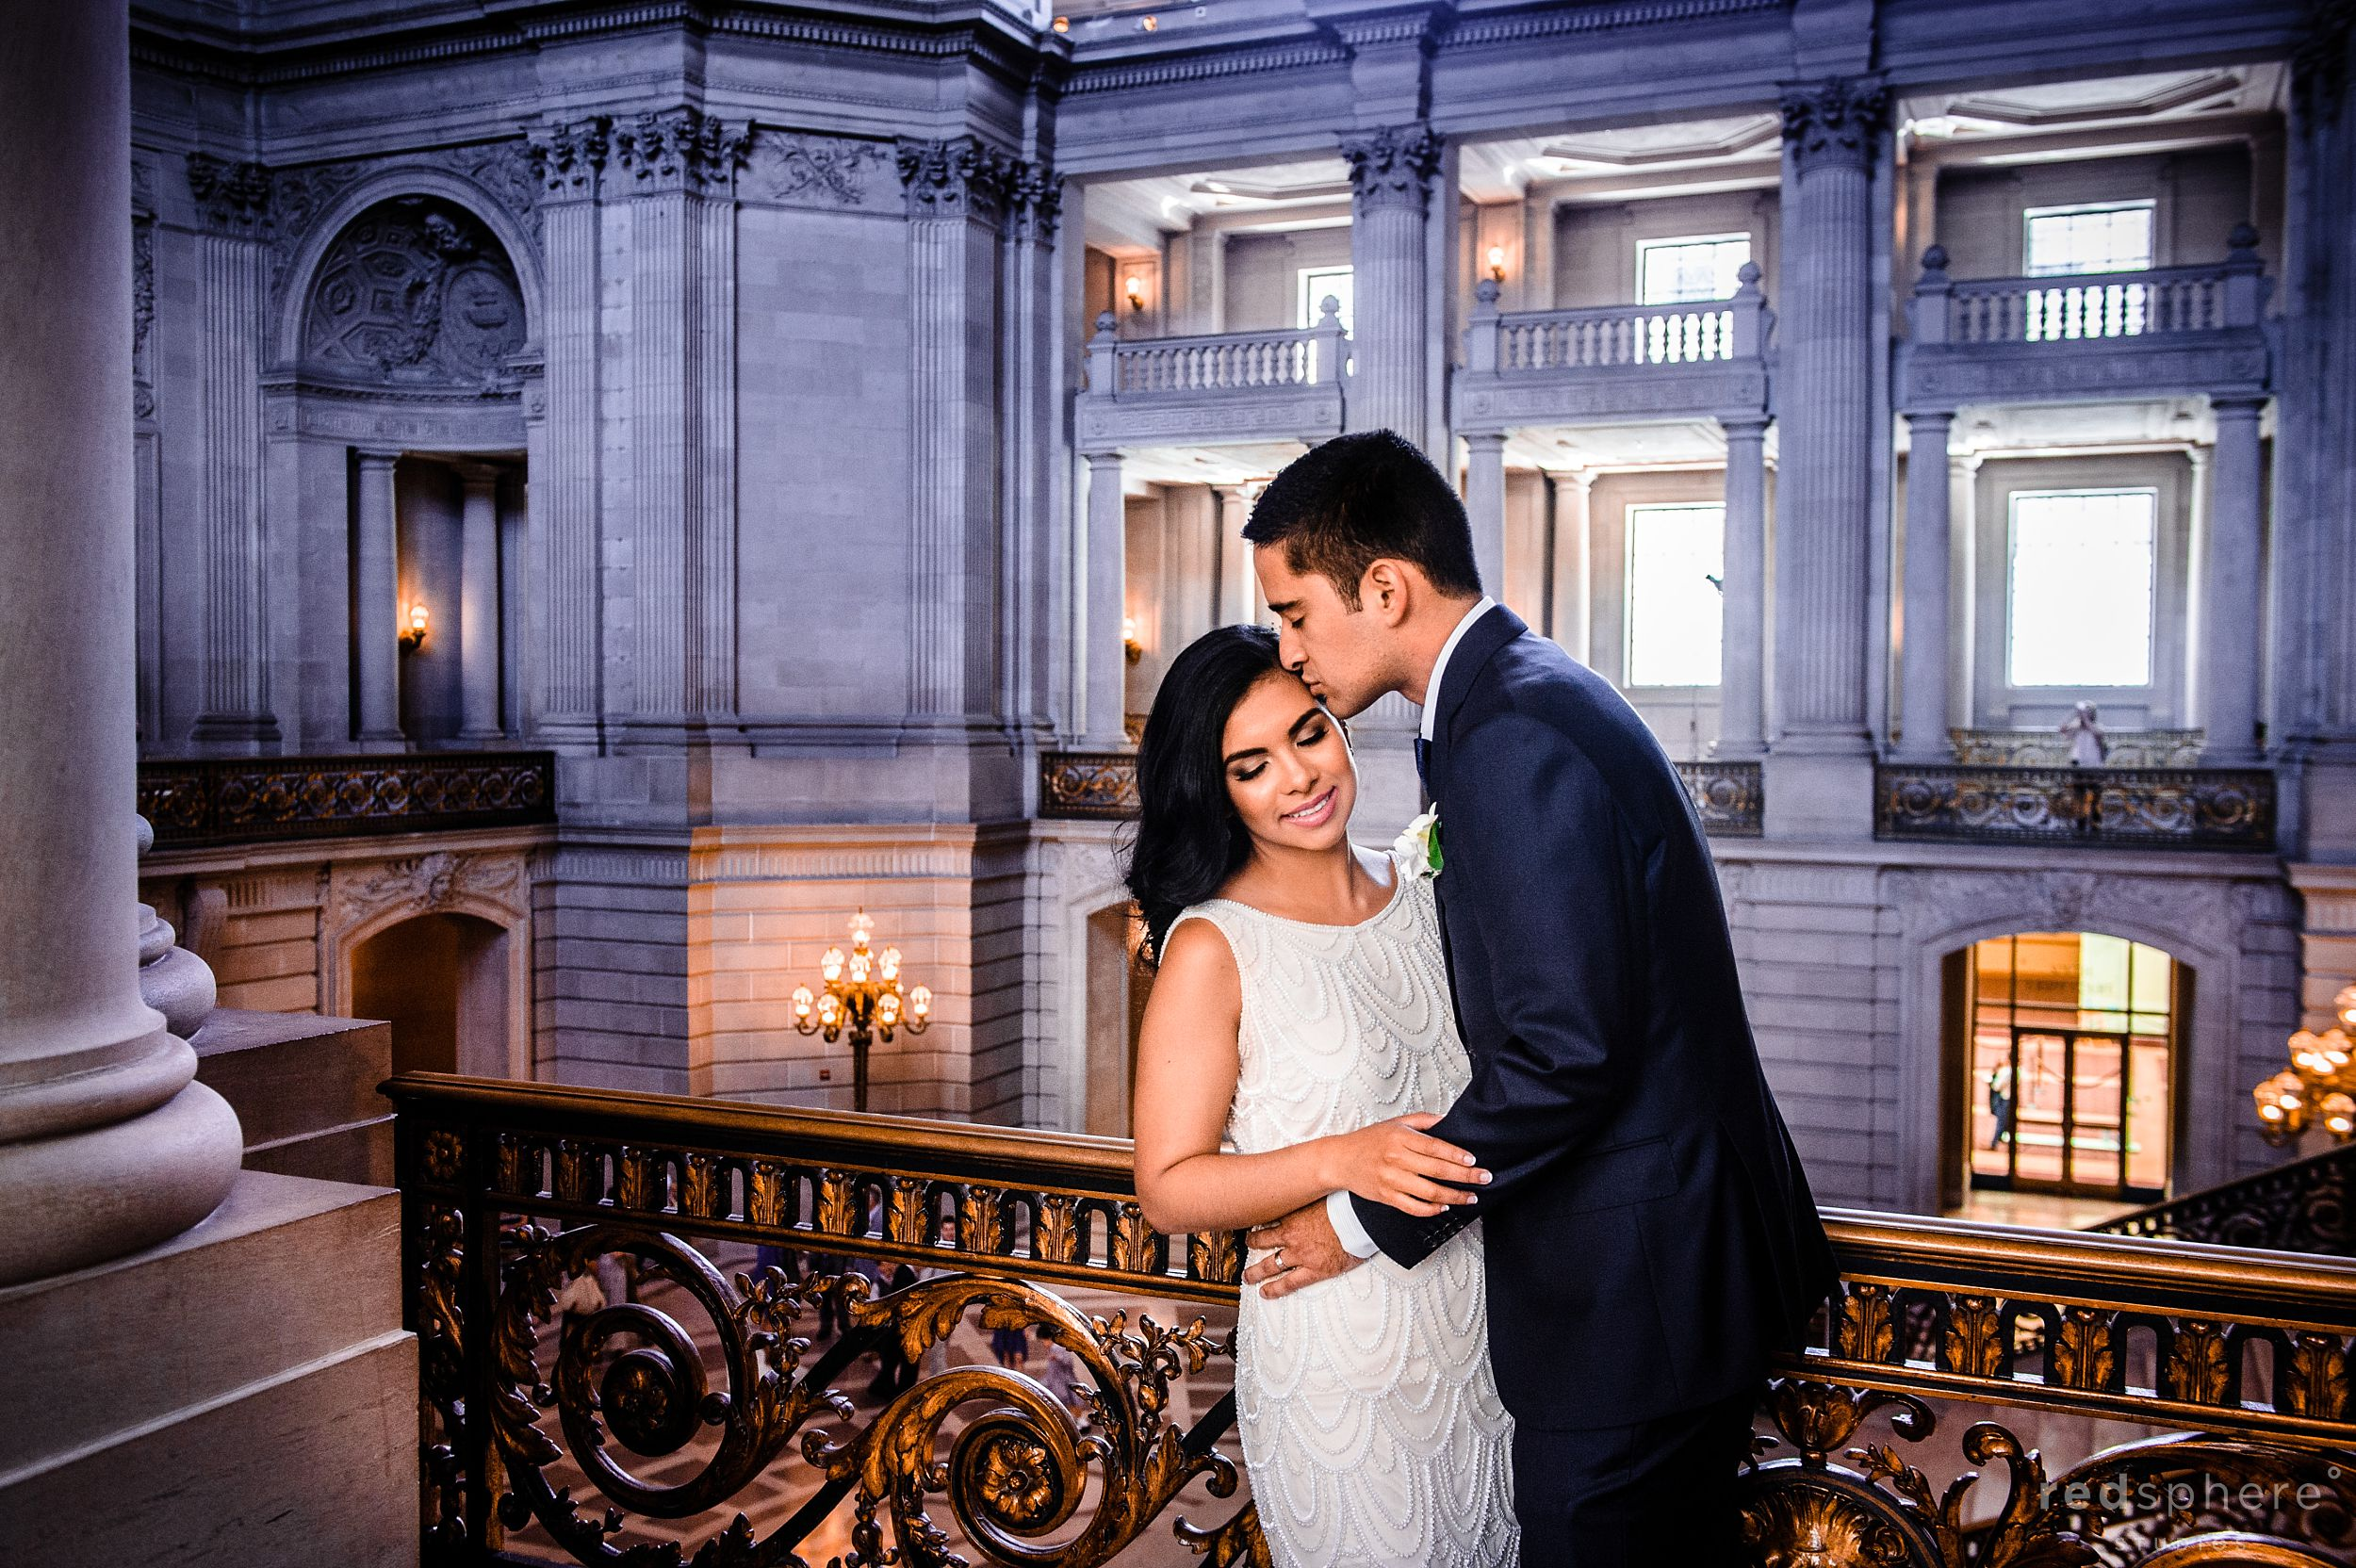 Groom Kisses Bride's Forehead Before San Francisco City Hall Wedding Ceremony